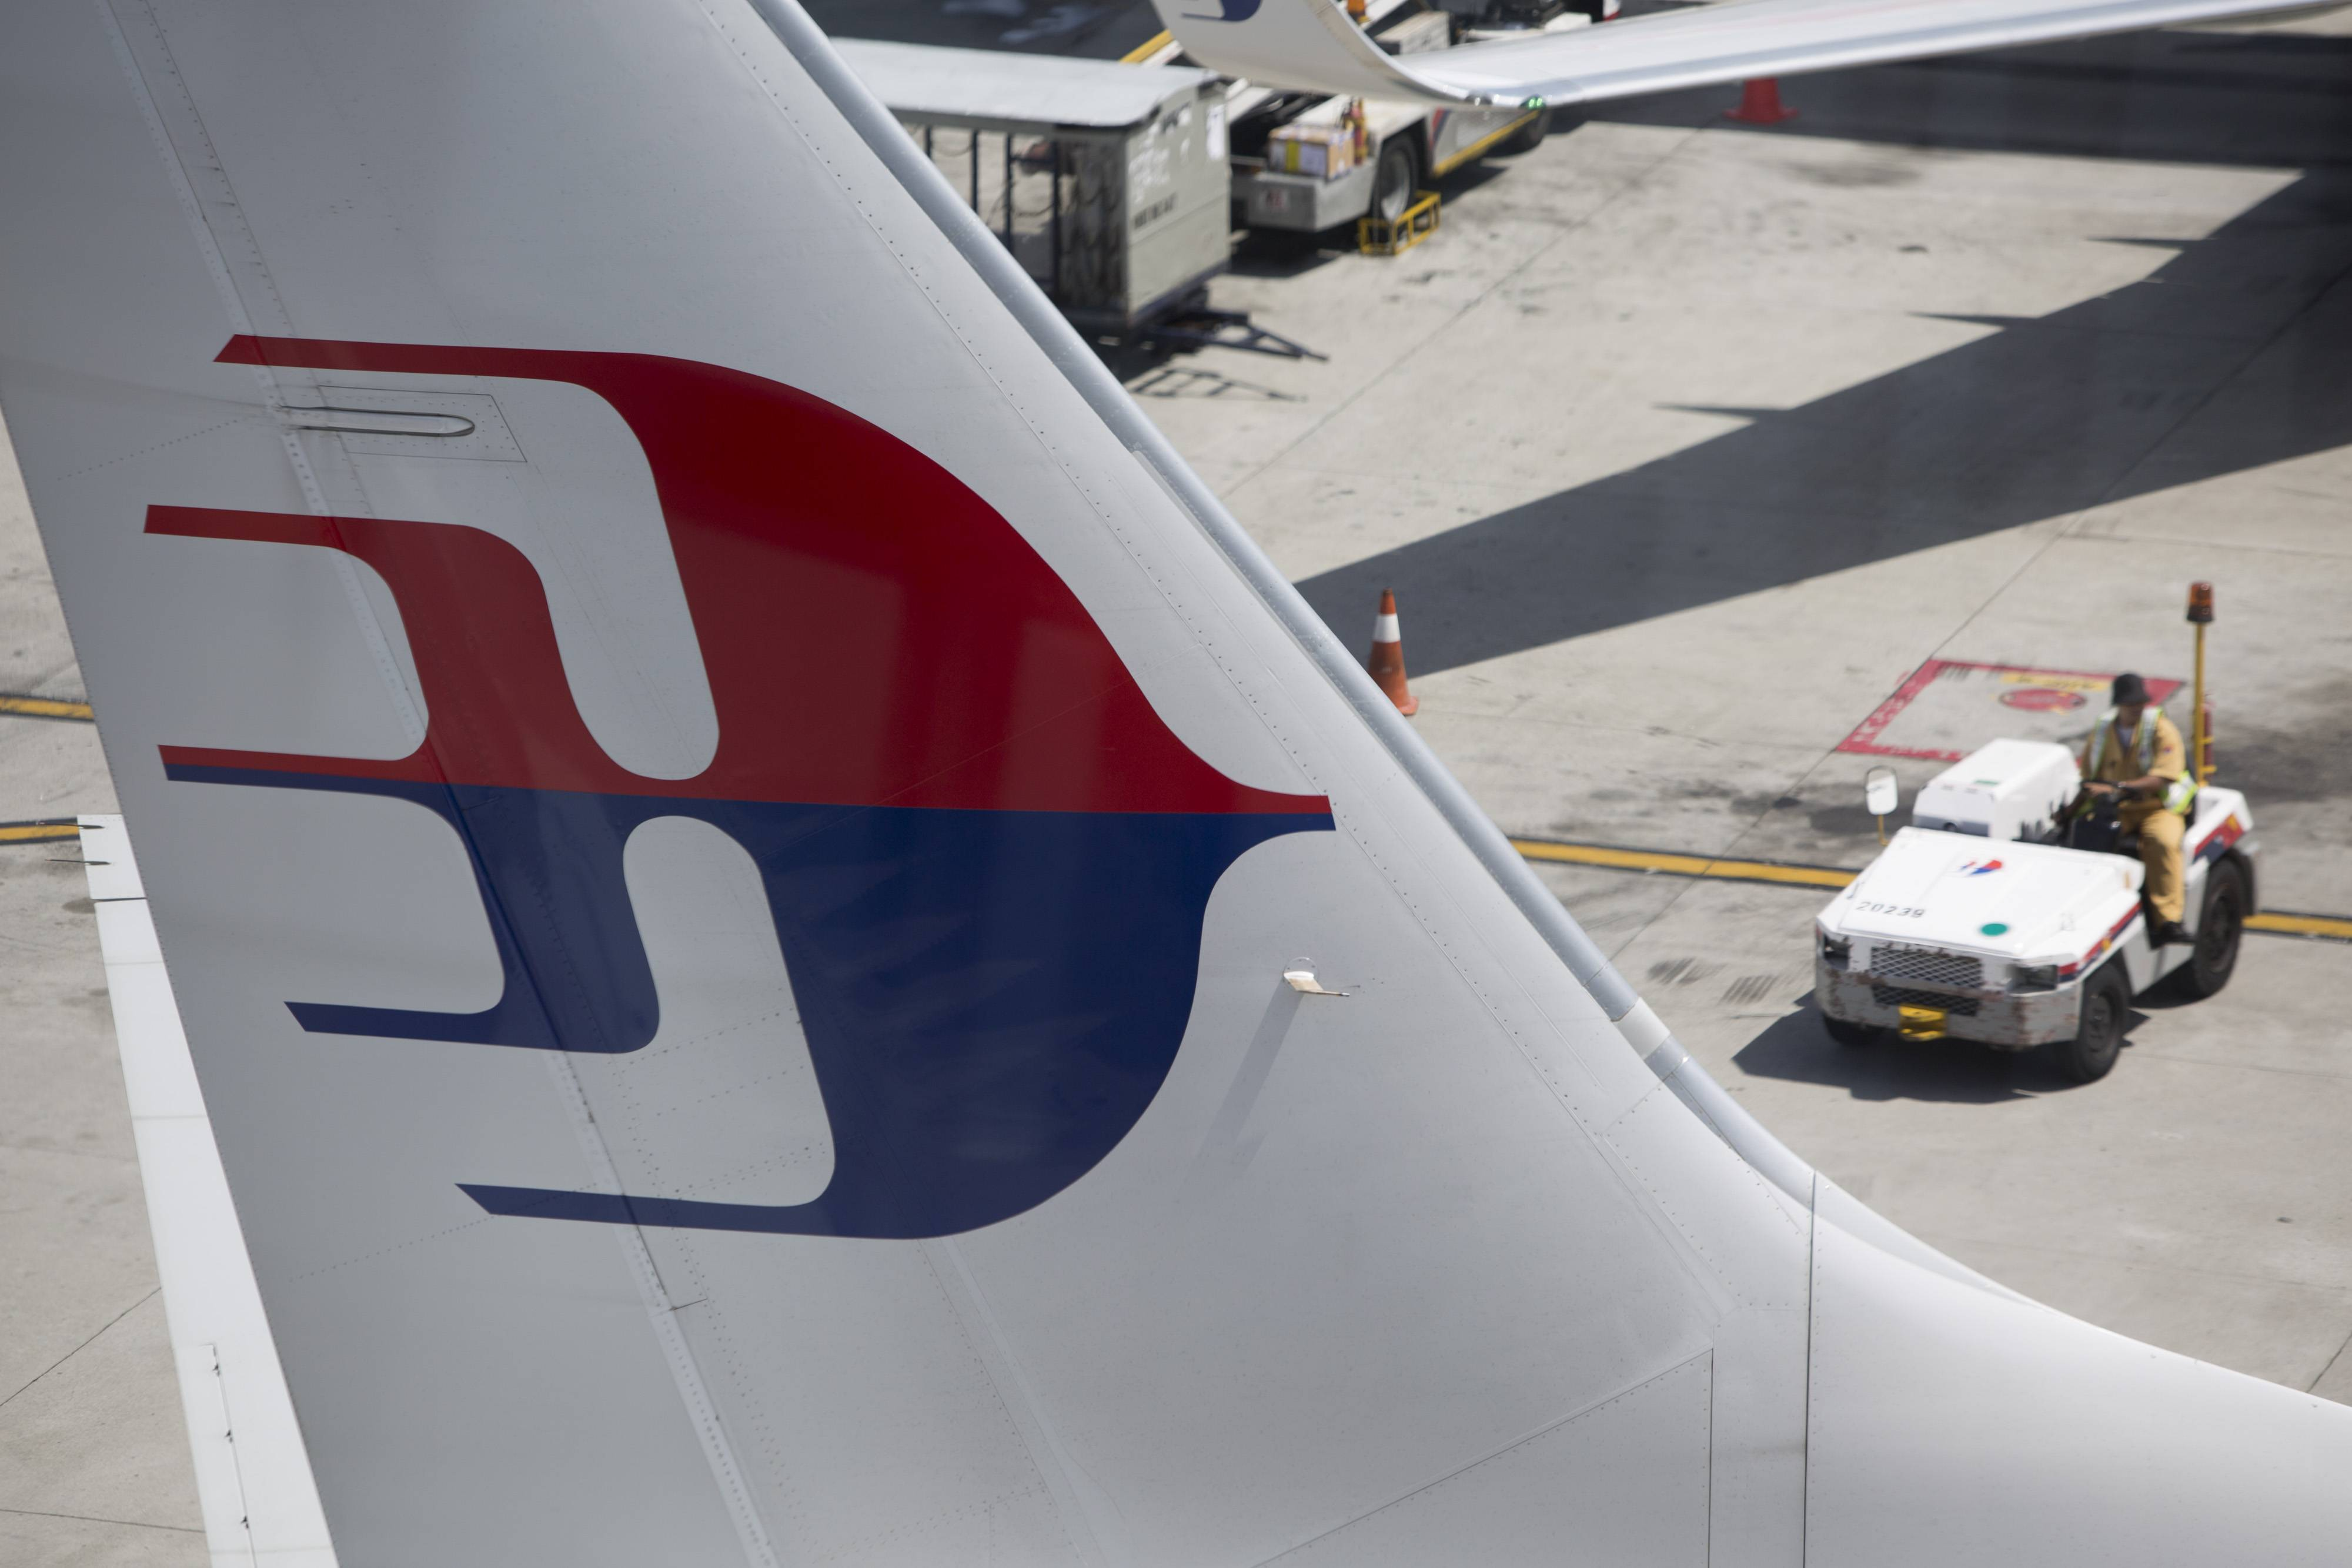 Malaysian Airline System Bhd. is facing an influx of passenger cancellations after the carrier's second disaster this year, adding to the strains of a company that's bracing for a fourth consecutive annual loss.